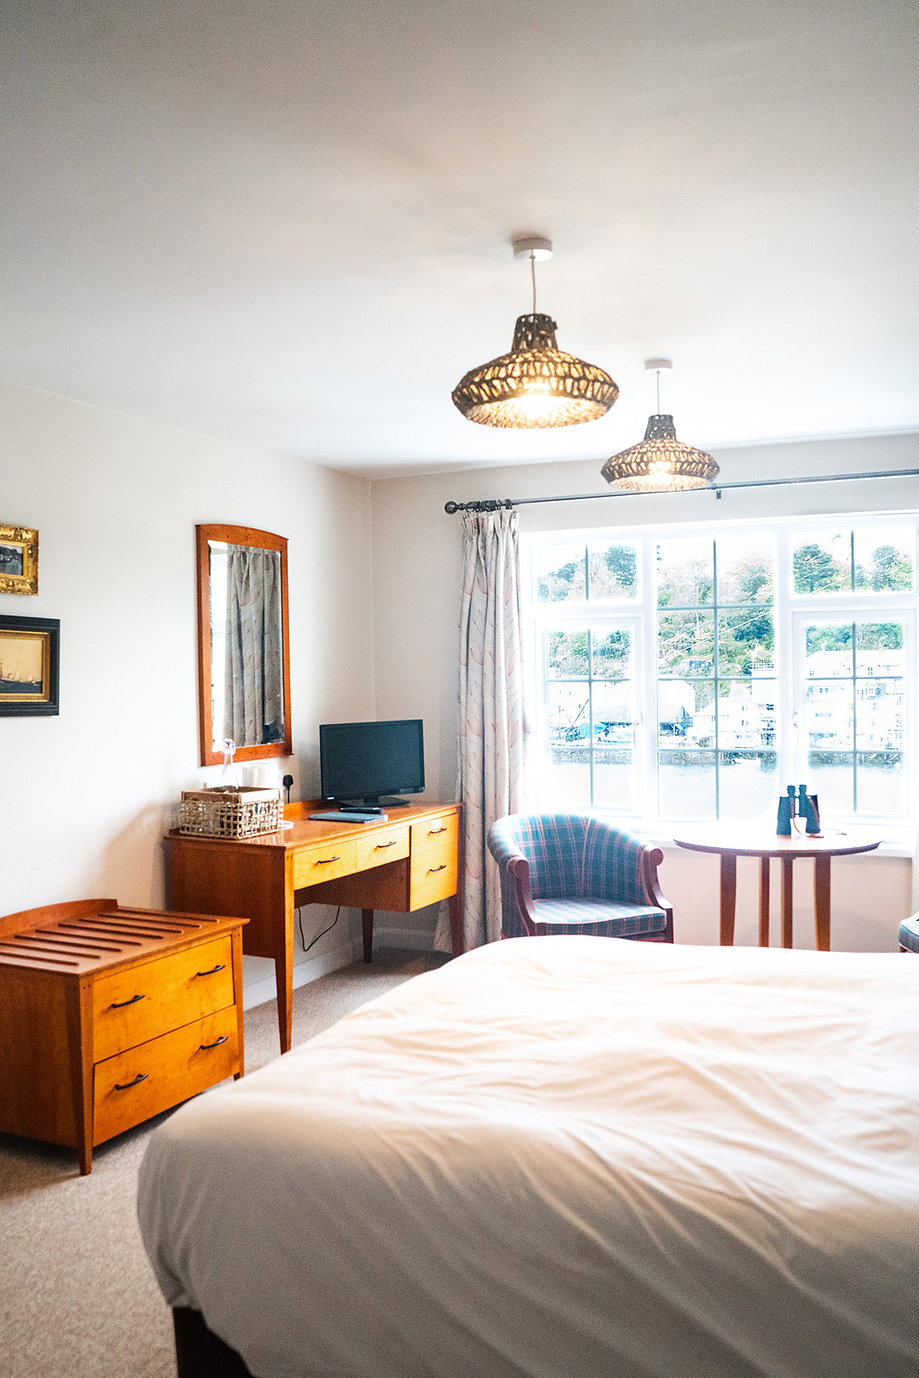 Accommodation room at The Old Ferry Inn,